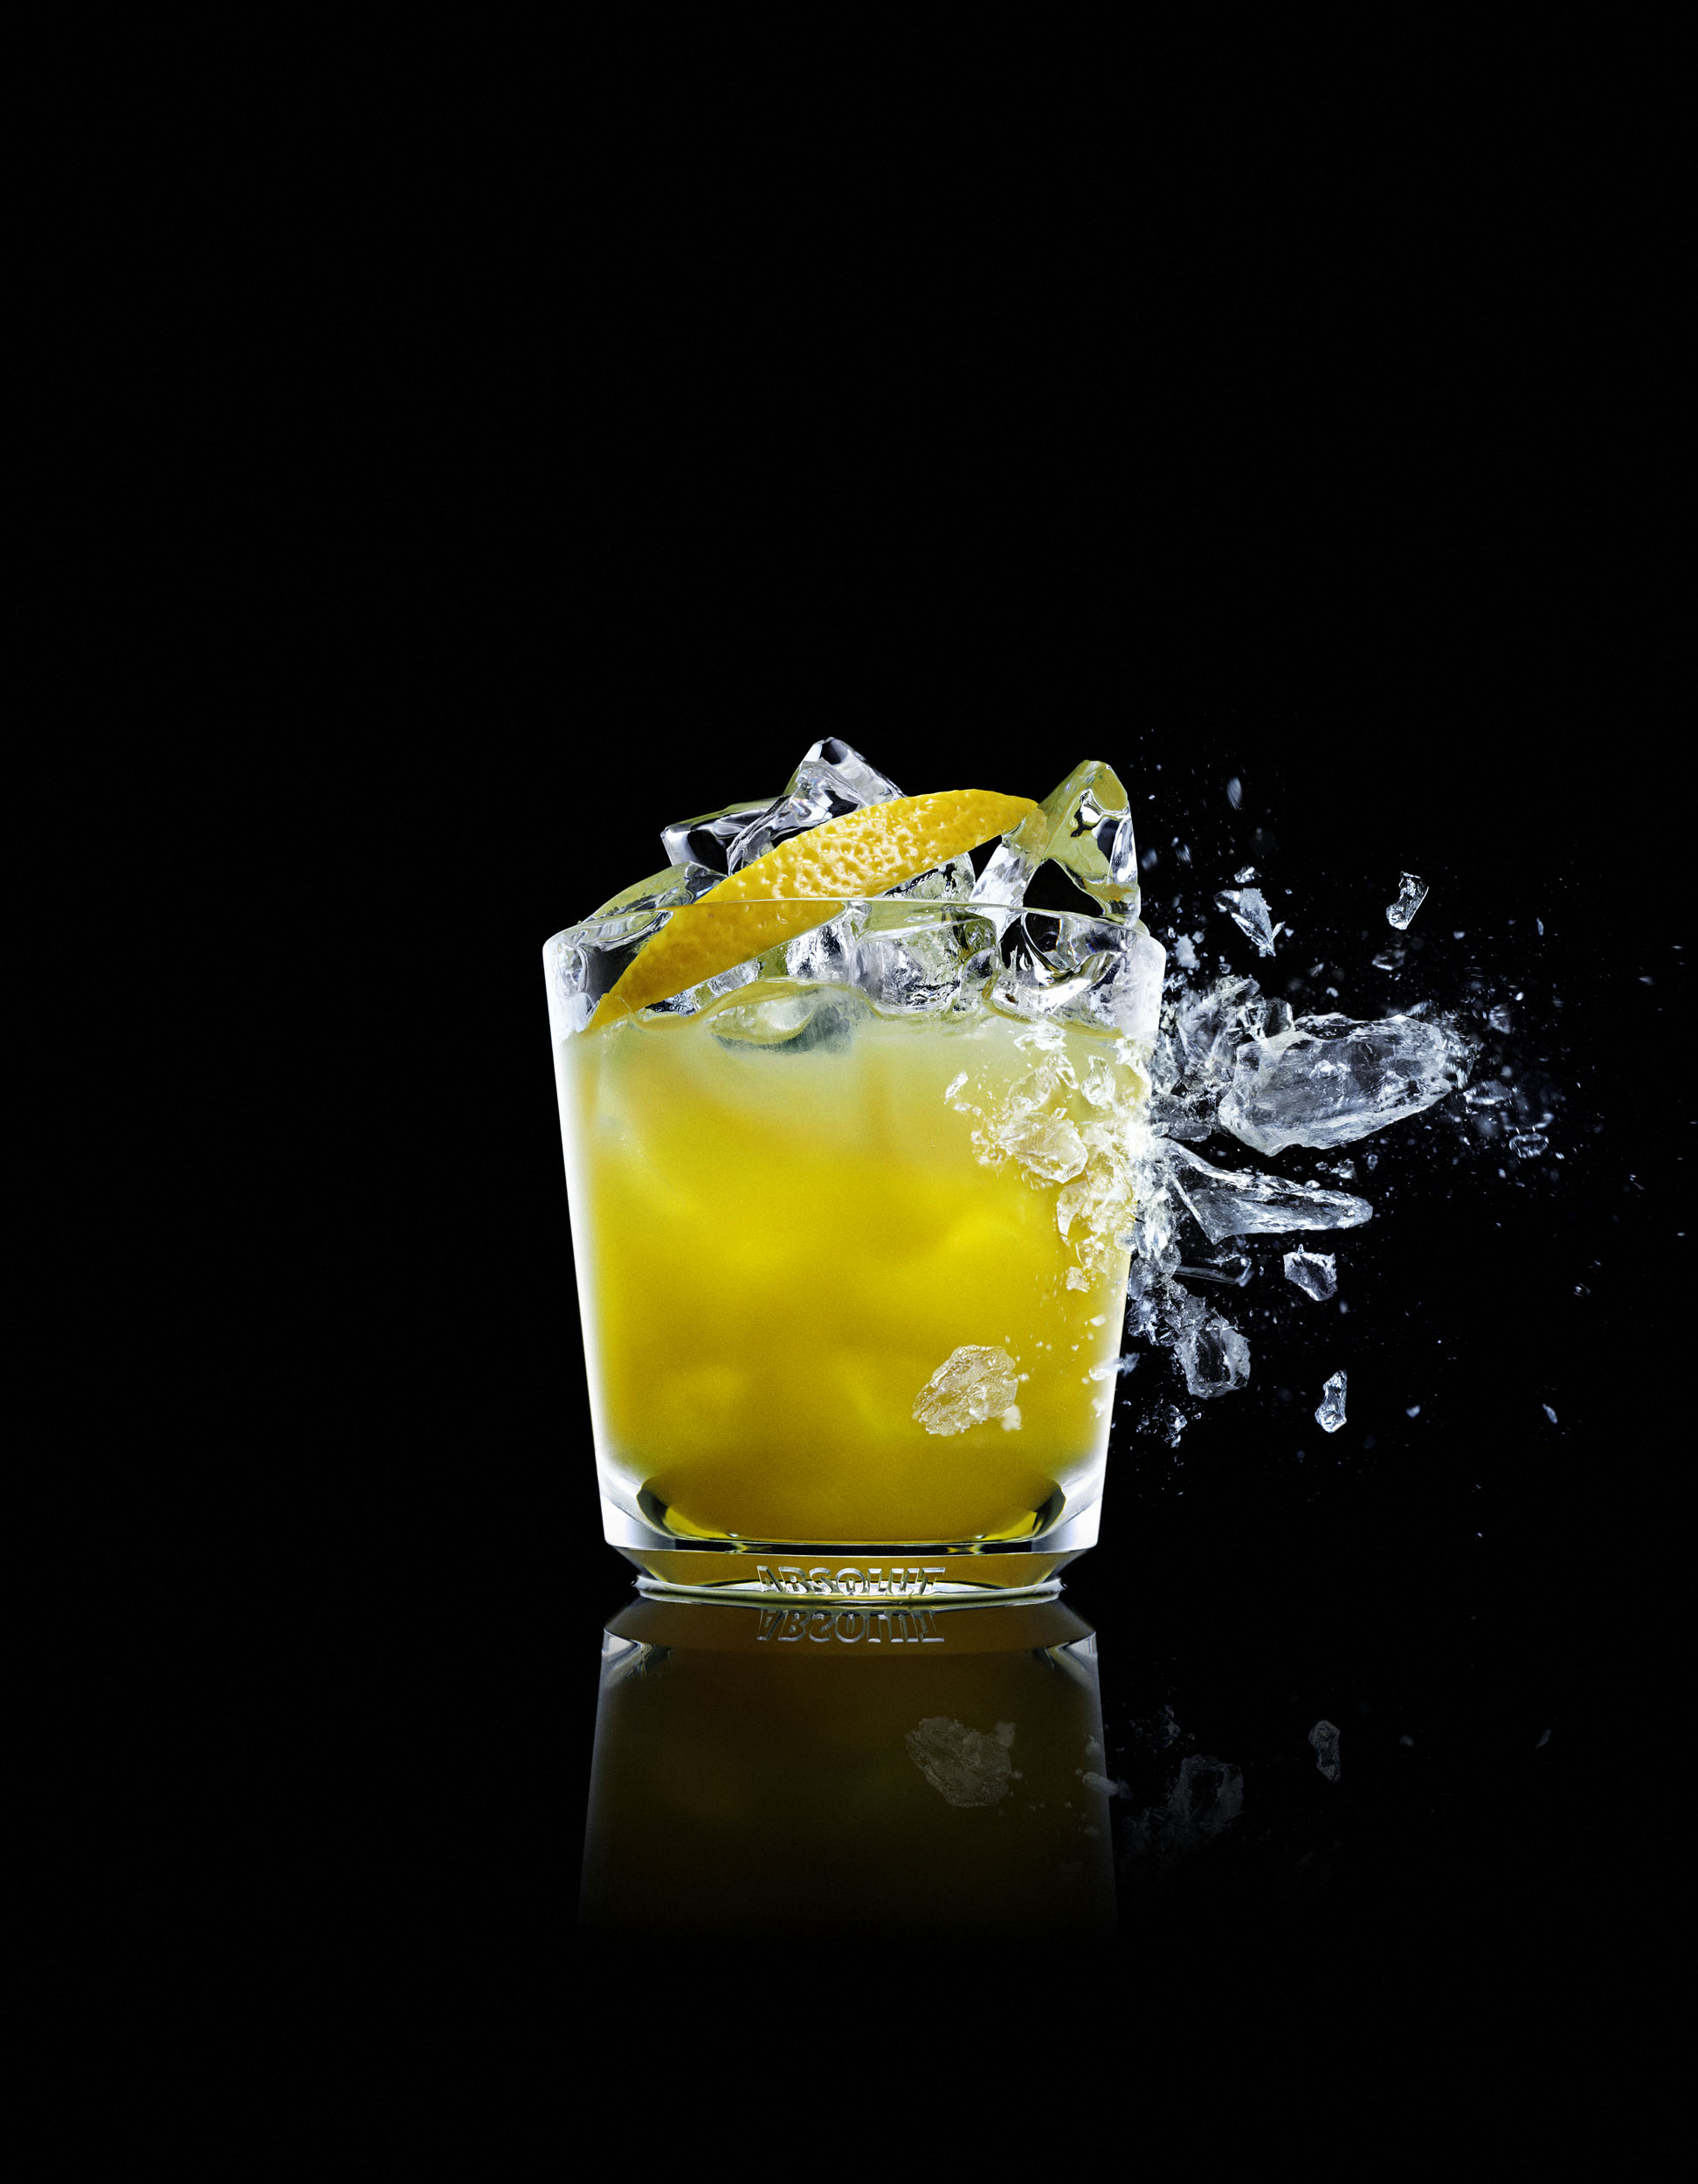 jensmortensen-absolut-vodka-6b20dea6